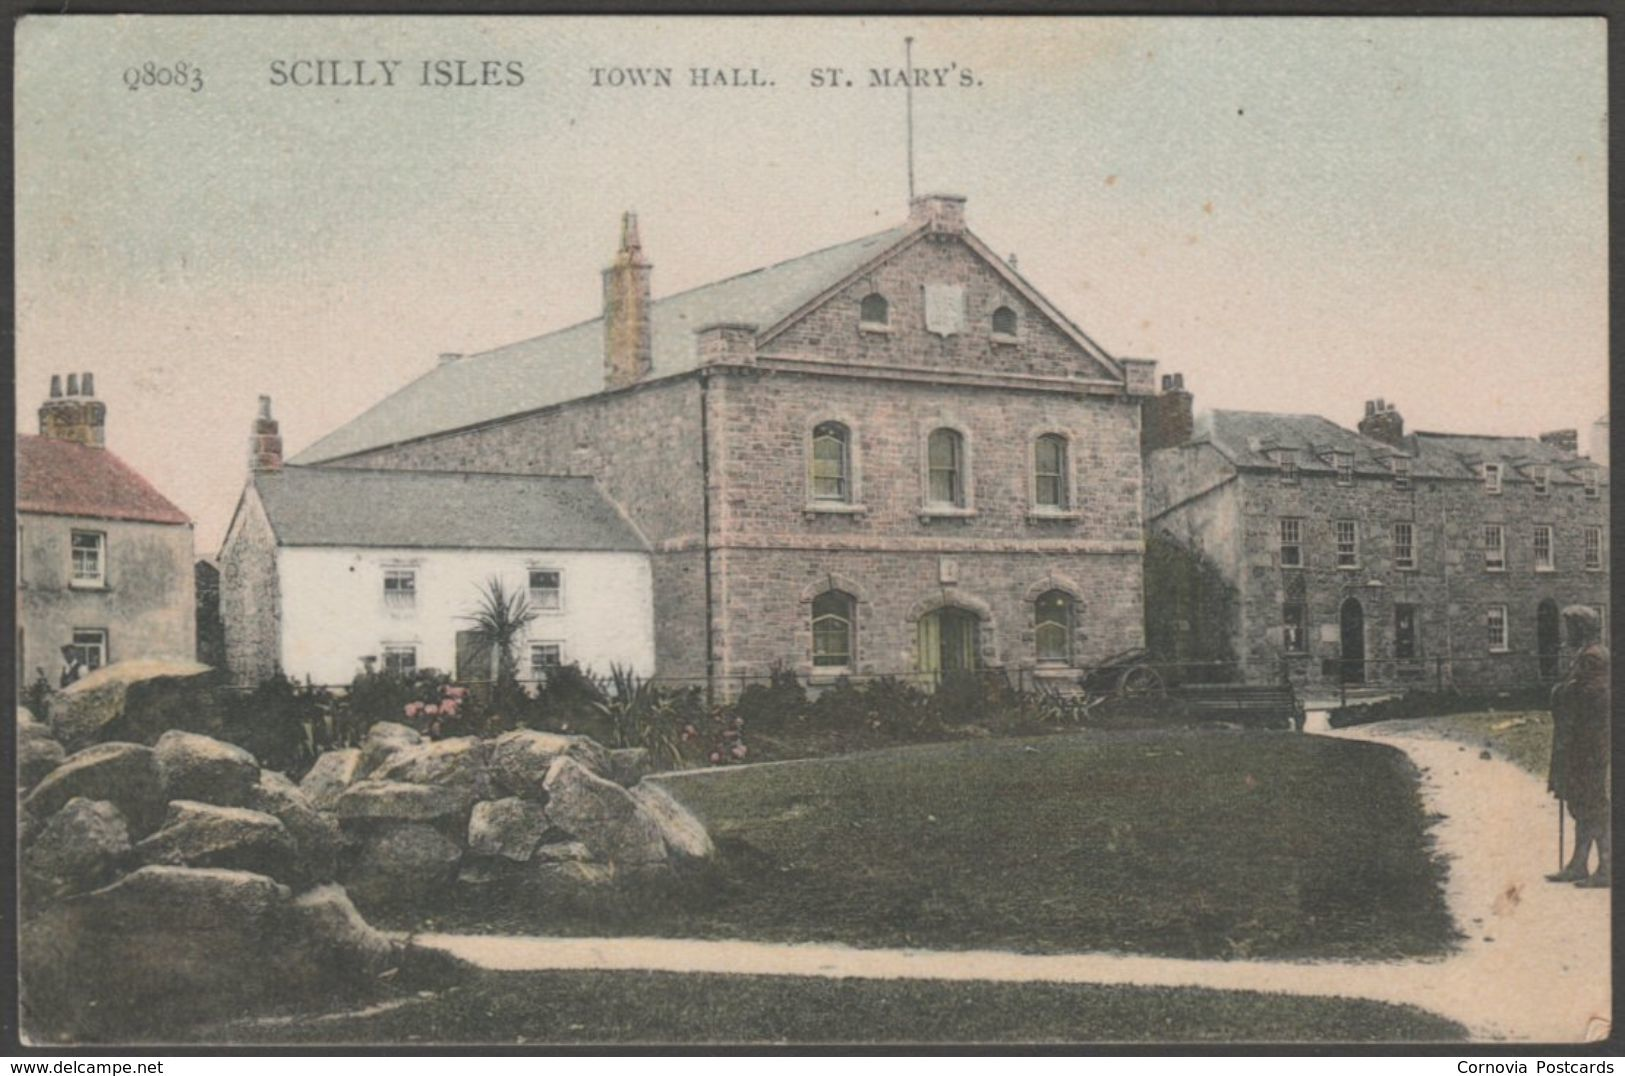 Town Hall, St Mary's, Scilly Isles, 1908 - Peacock Postcard